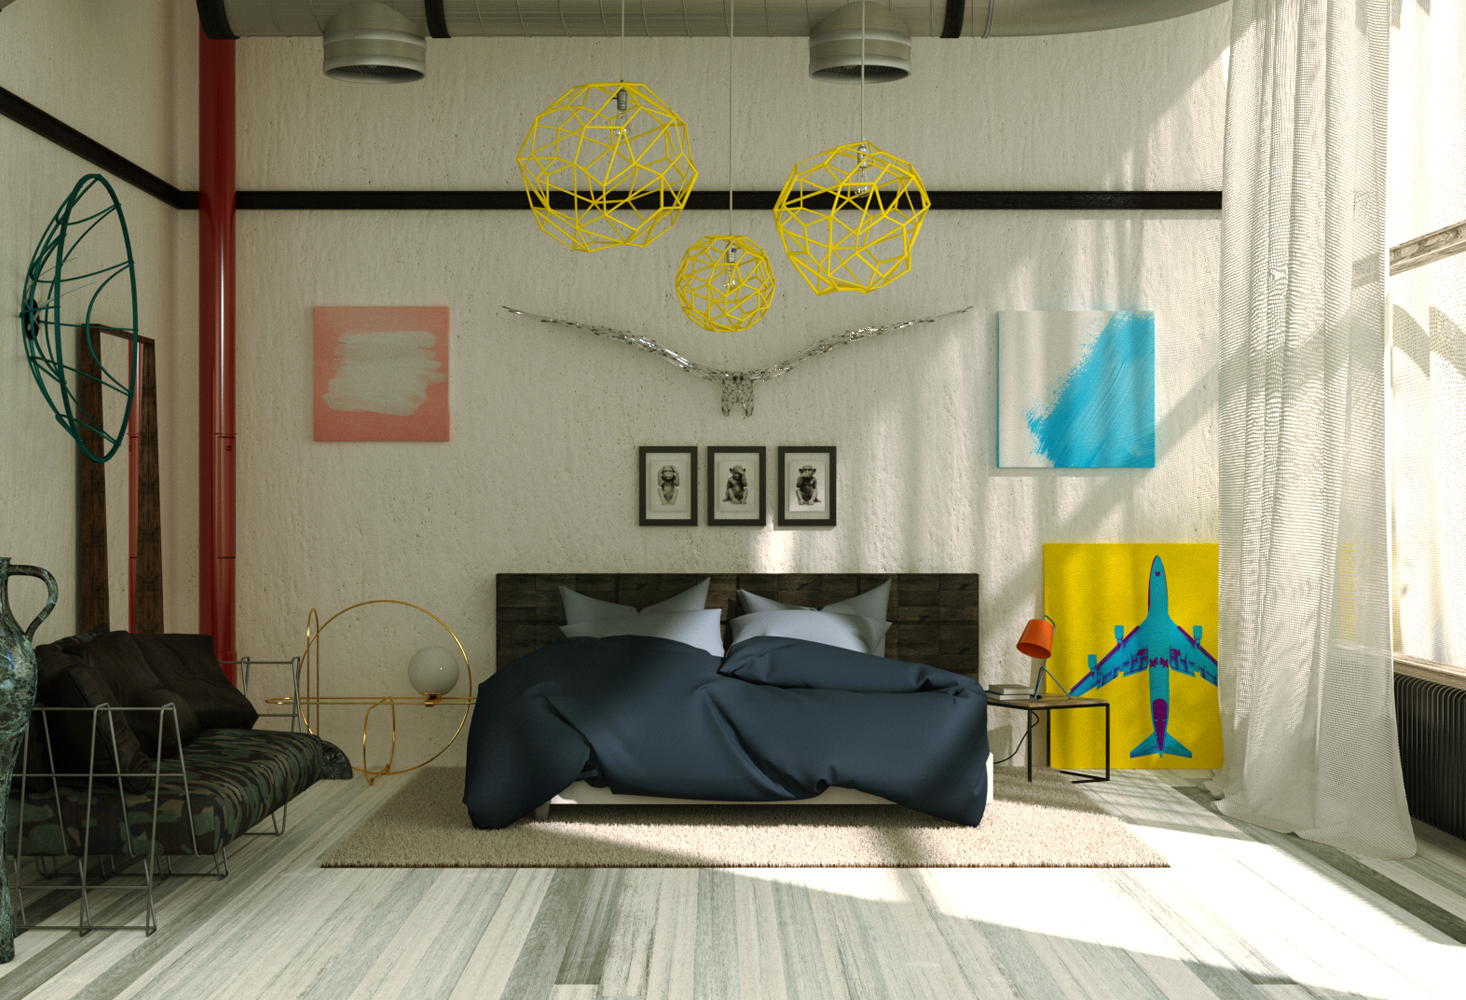 Studio Capicua cgi Architecture bedroom